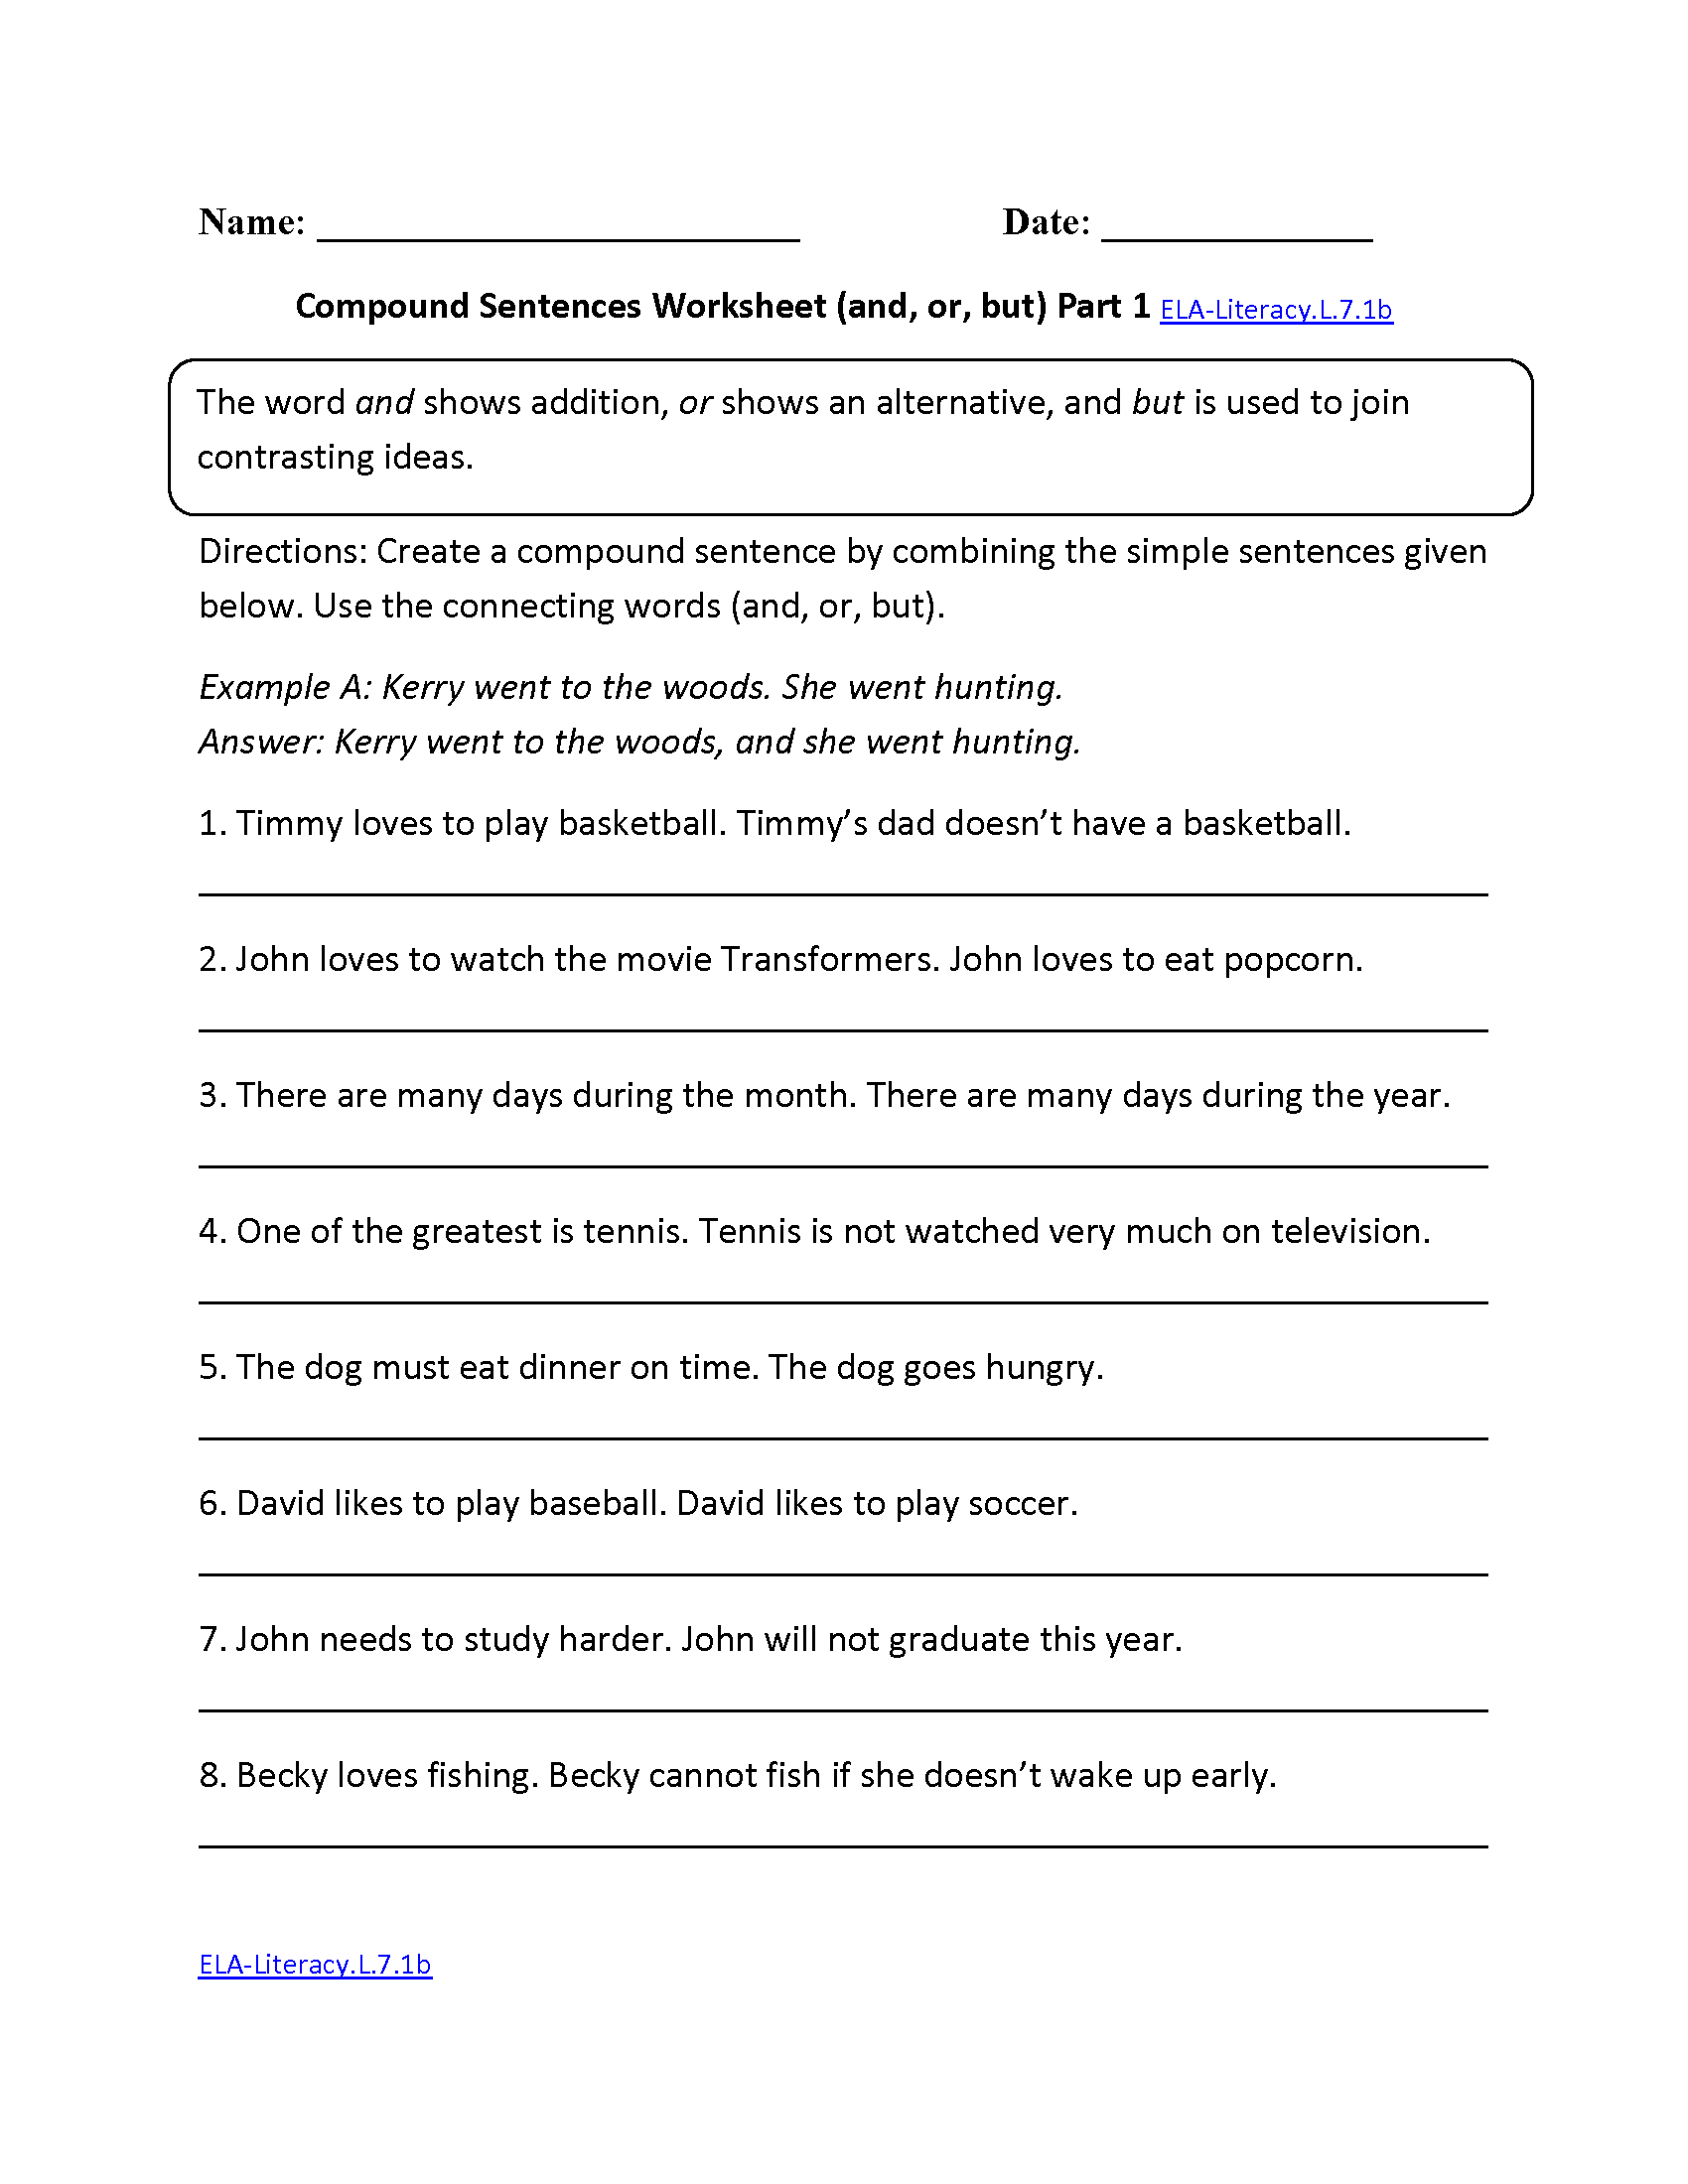 worksheet 4th Grade Vocabulary Worksheets 7th grade common core language worksheets compound sentences worksheet ela literacy l 7 1b worksheet